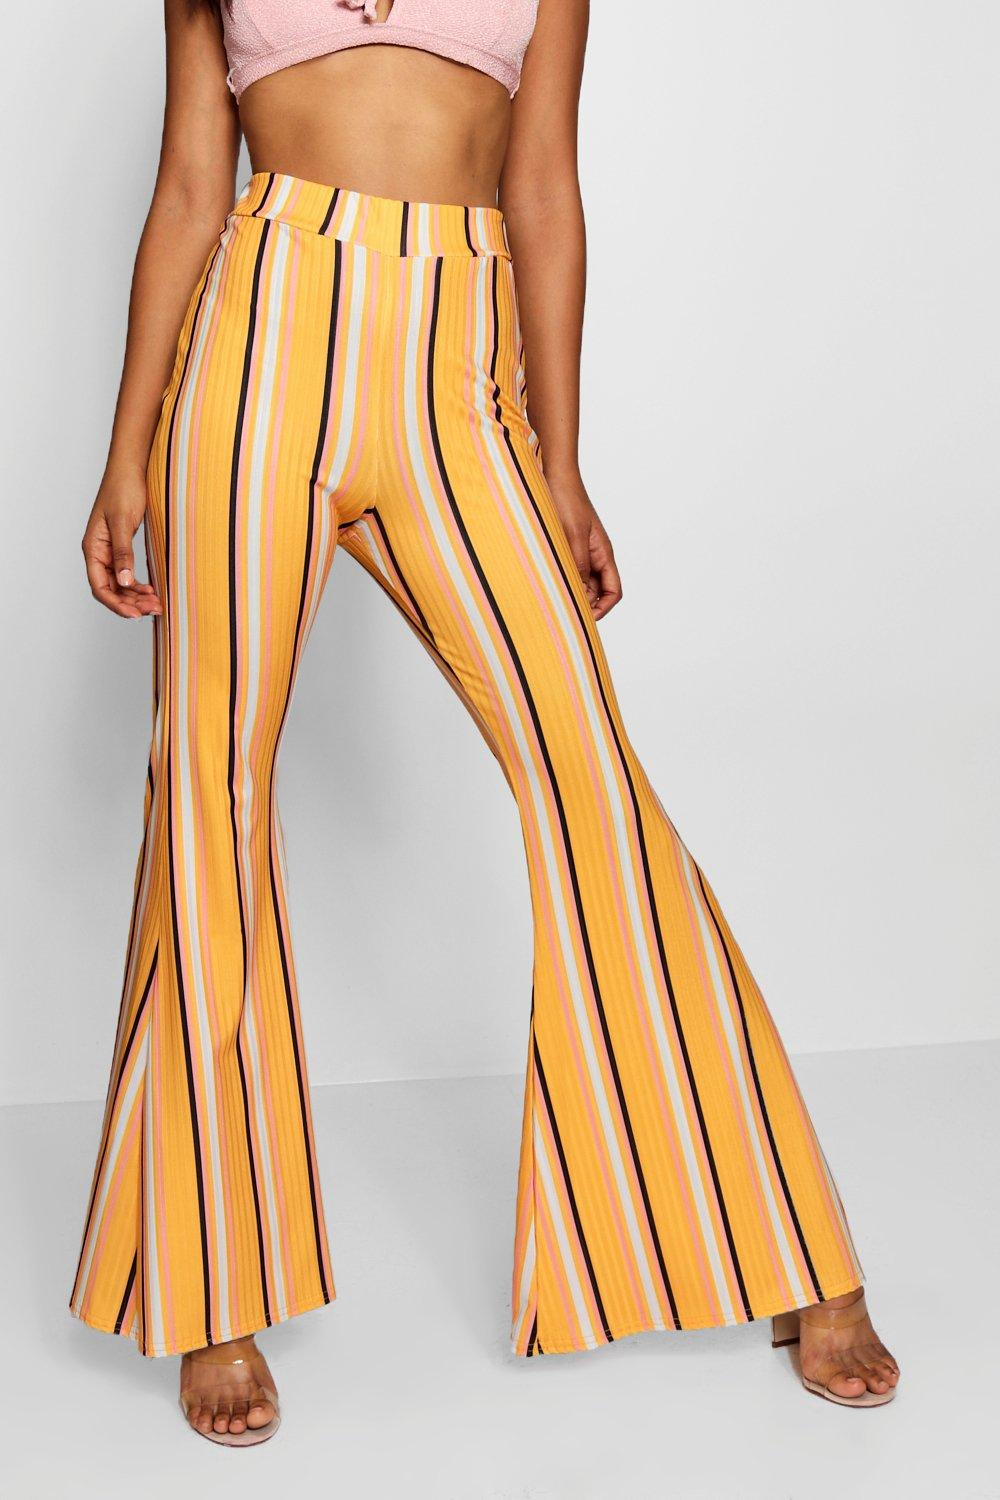 Stripe Leg High Wide Waist mustard Trouser 5W5xqrw8tS